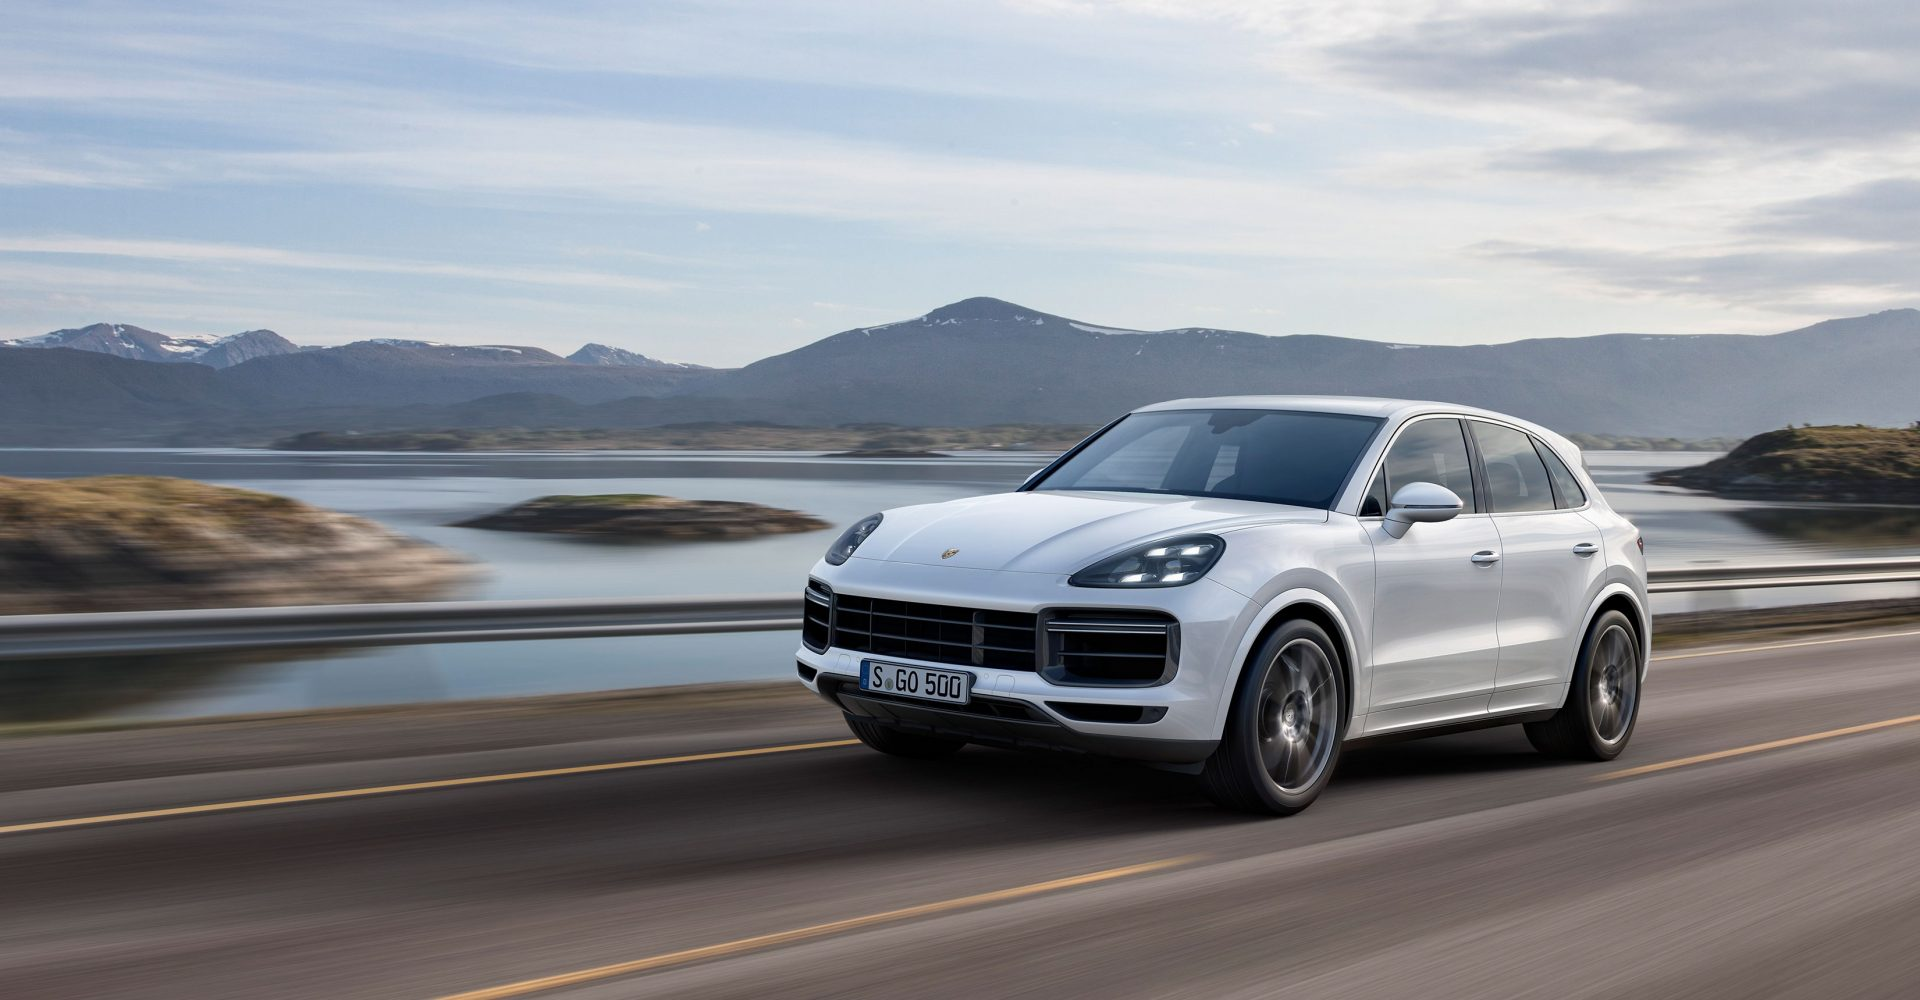 New Porsche Cayenne Turbo takes its place at top of refreshed model range